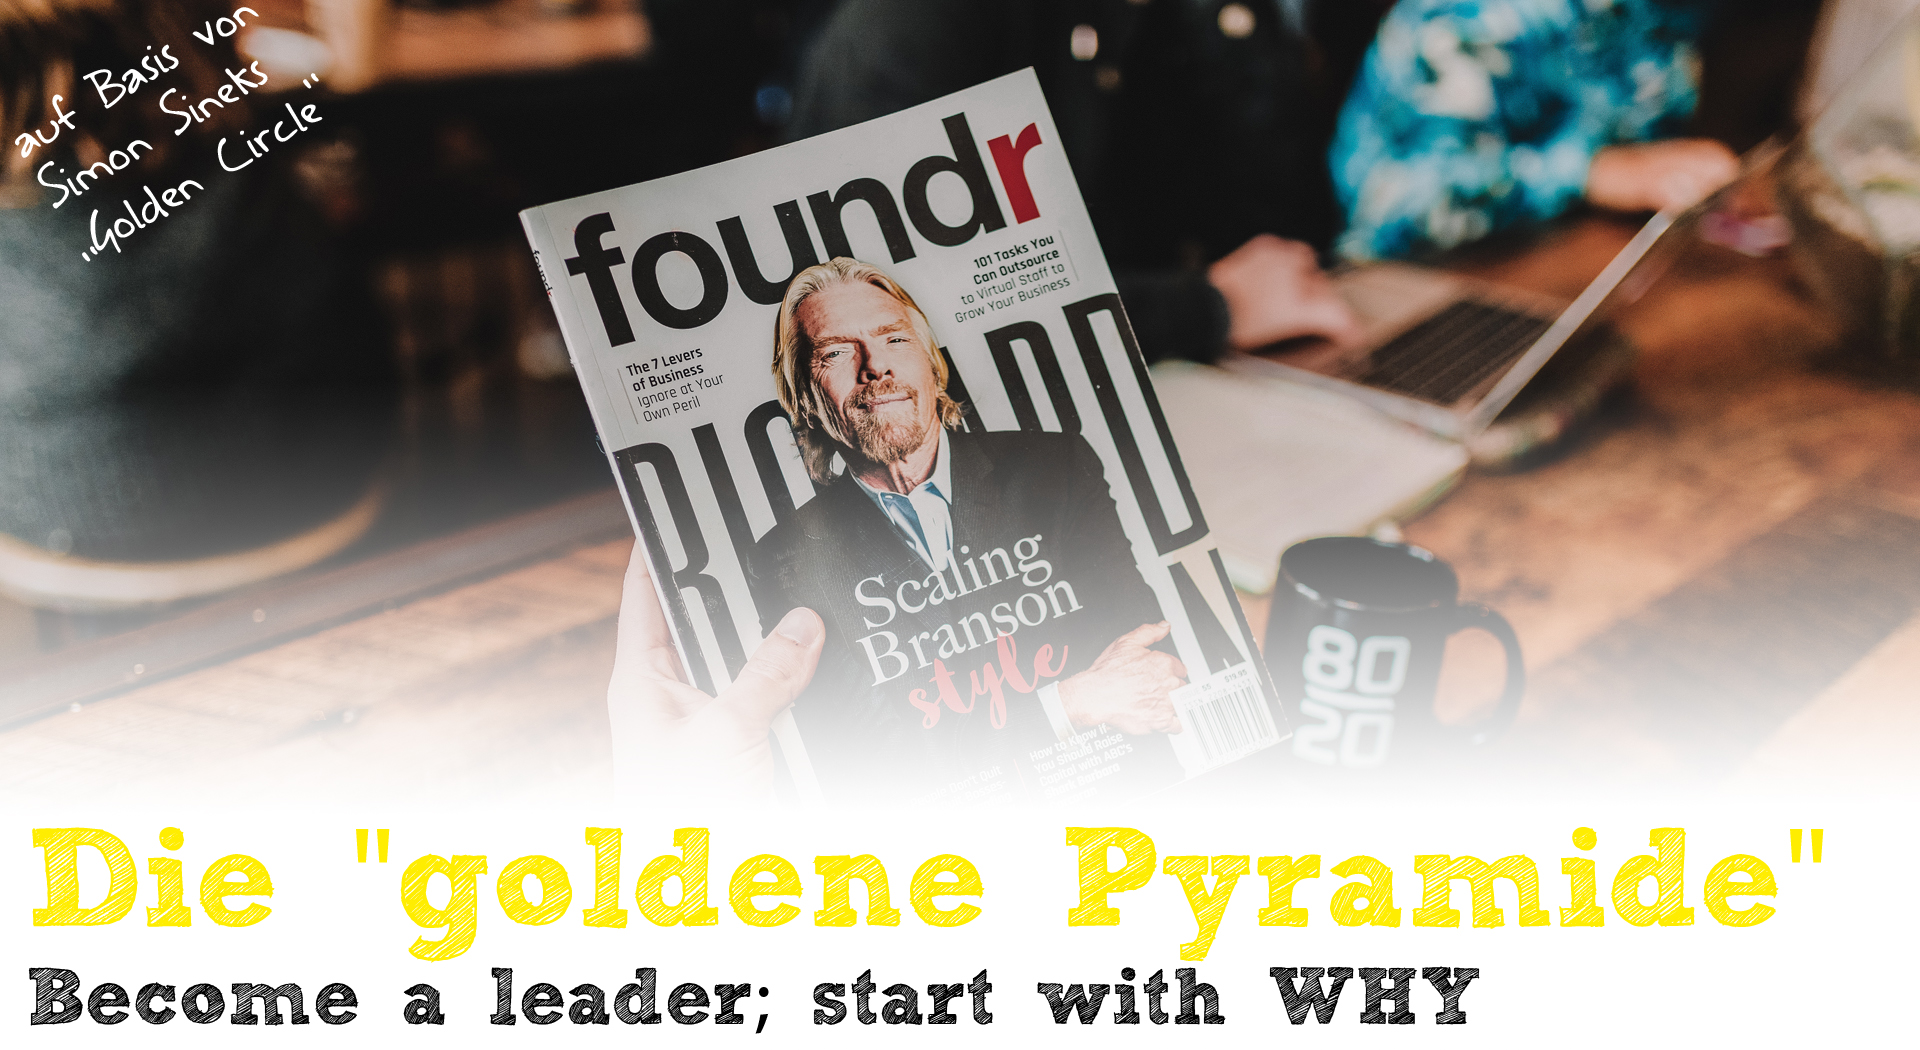 Die goldene Pyramide - Become a leader; start with WHY?